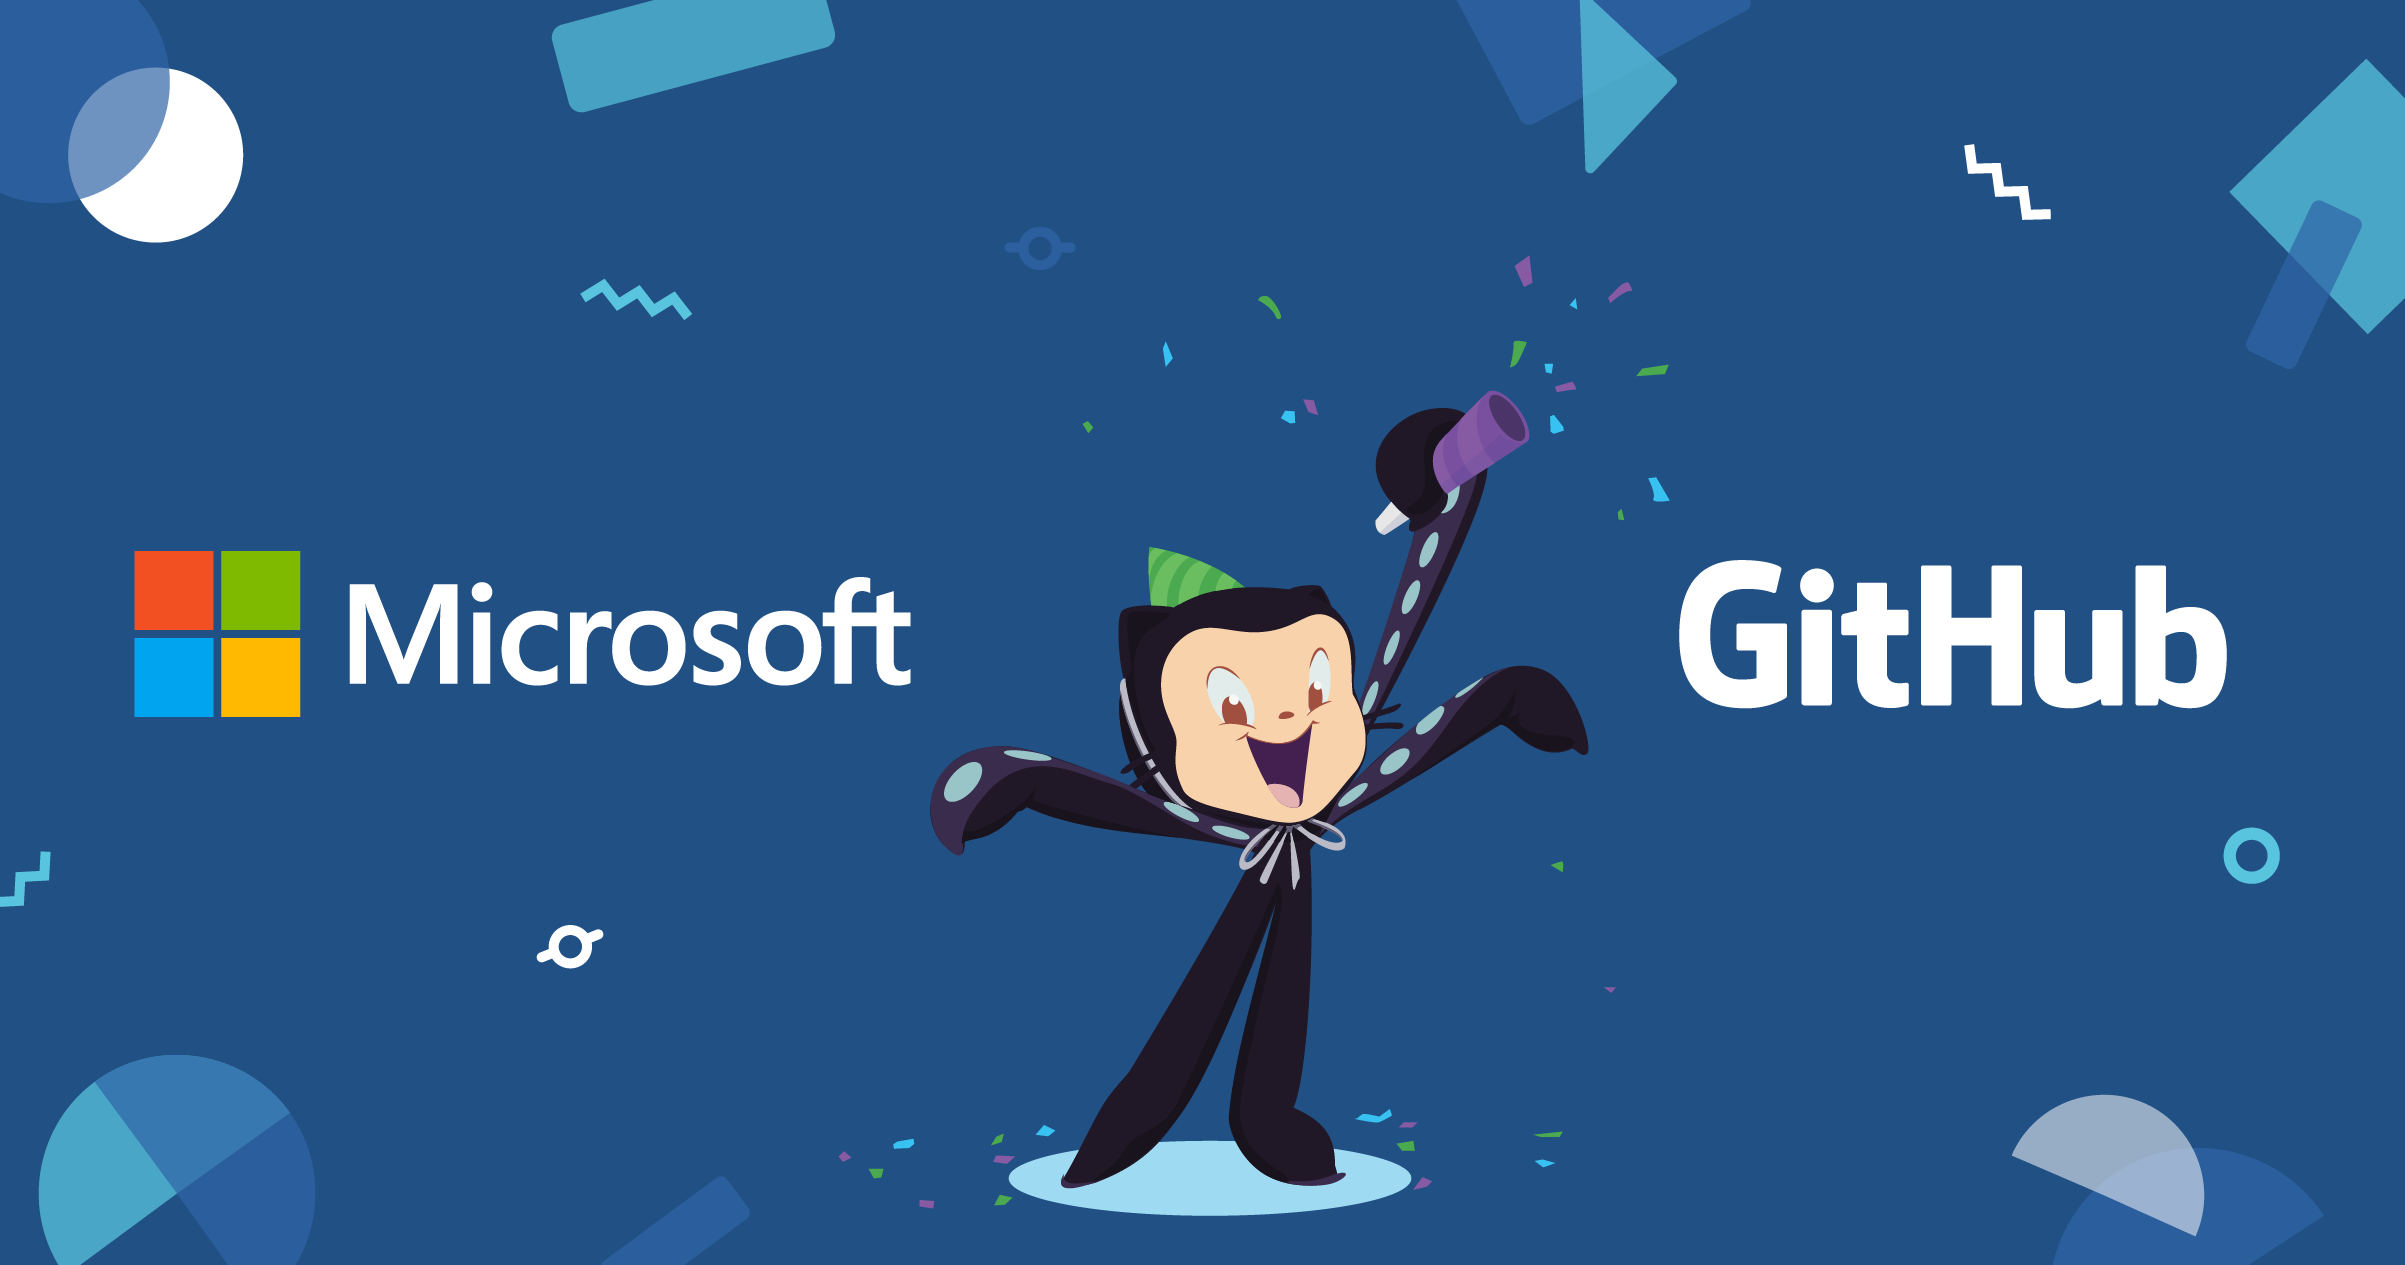 Microsoft has acquired GitHub for $7.5B in stock 40890924 4bad5ce0 6732 11e8 9648 192aa71f0830 1